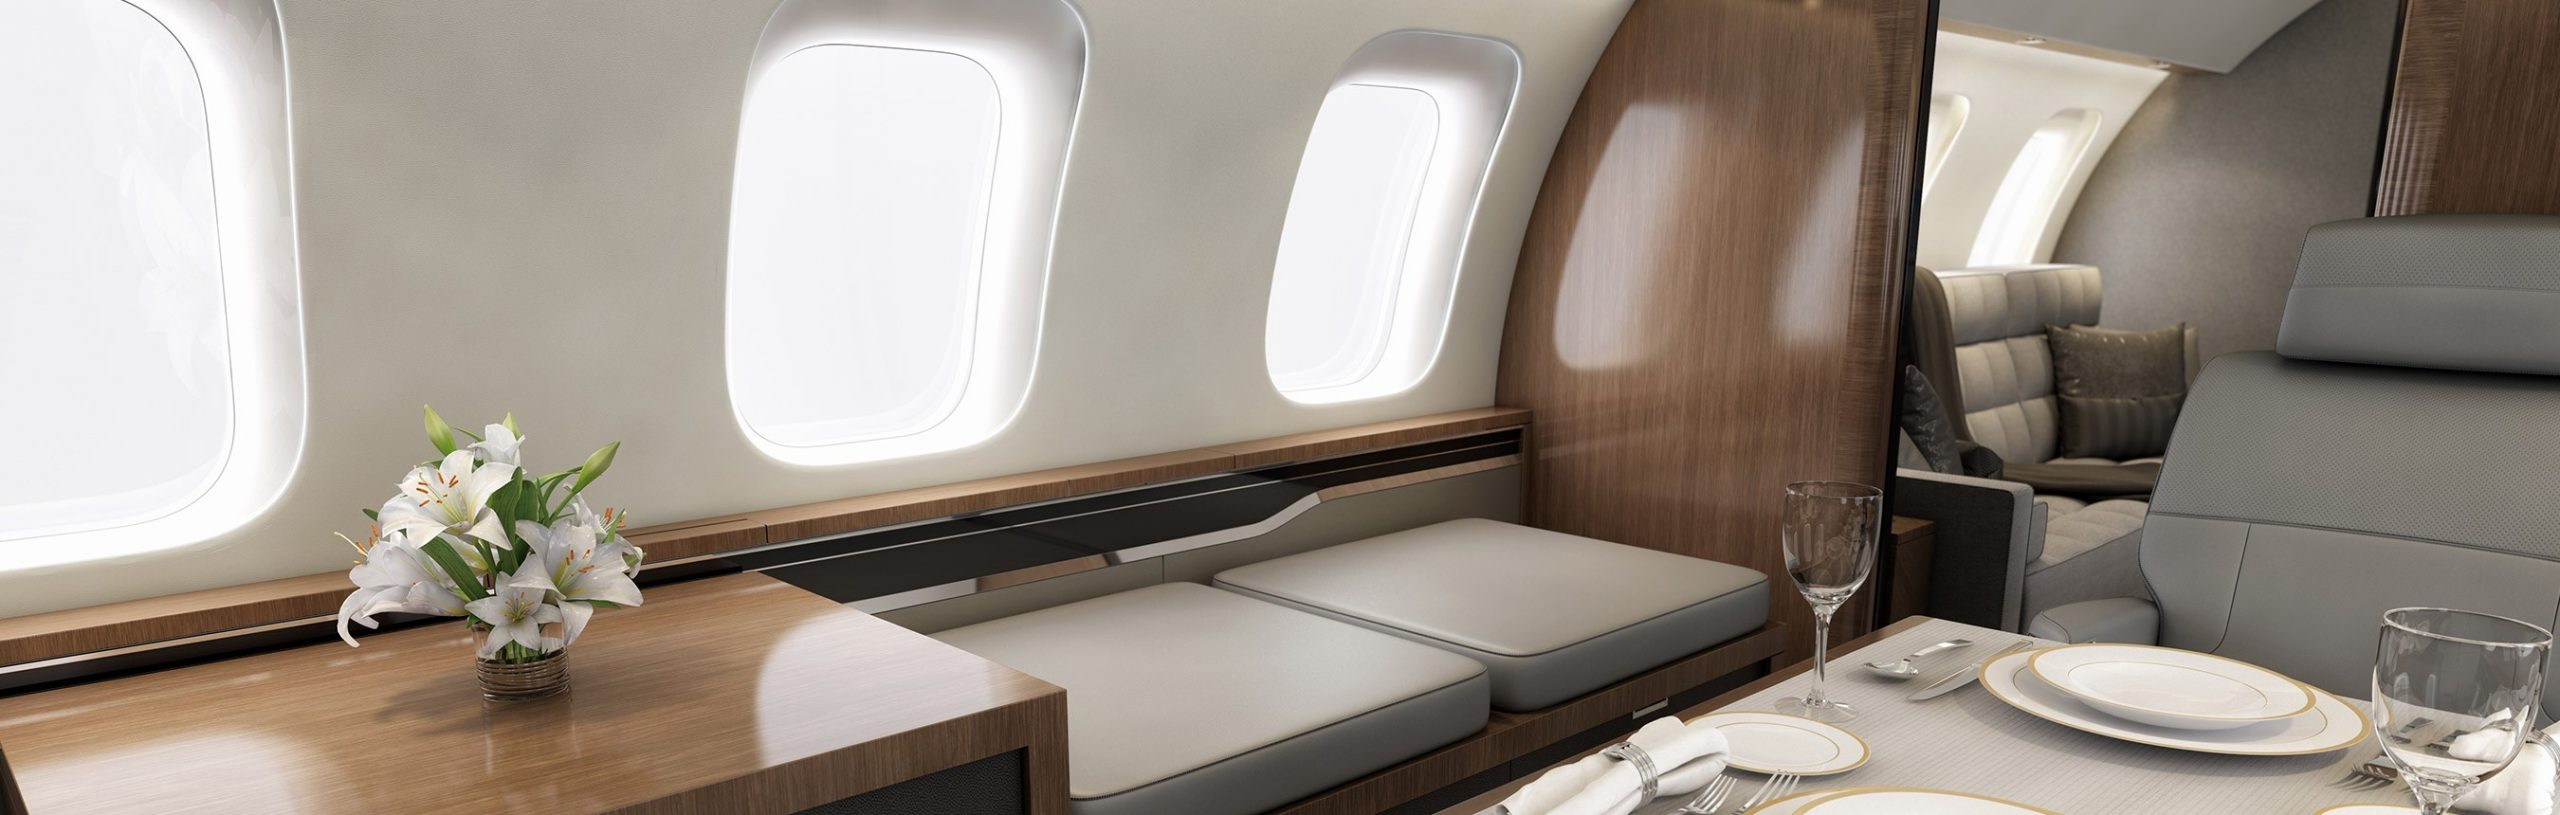 Bombardier private jet charter Bombardier business jet Bombardier corporate jet Bombardier charter8 scaled - Bombardier private jet builder Bombardier private charter and Bombardier jet broker